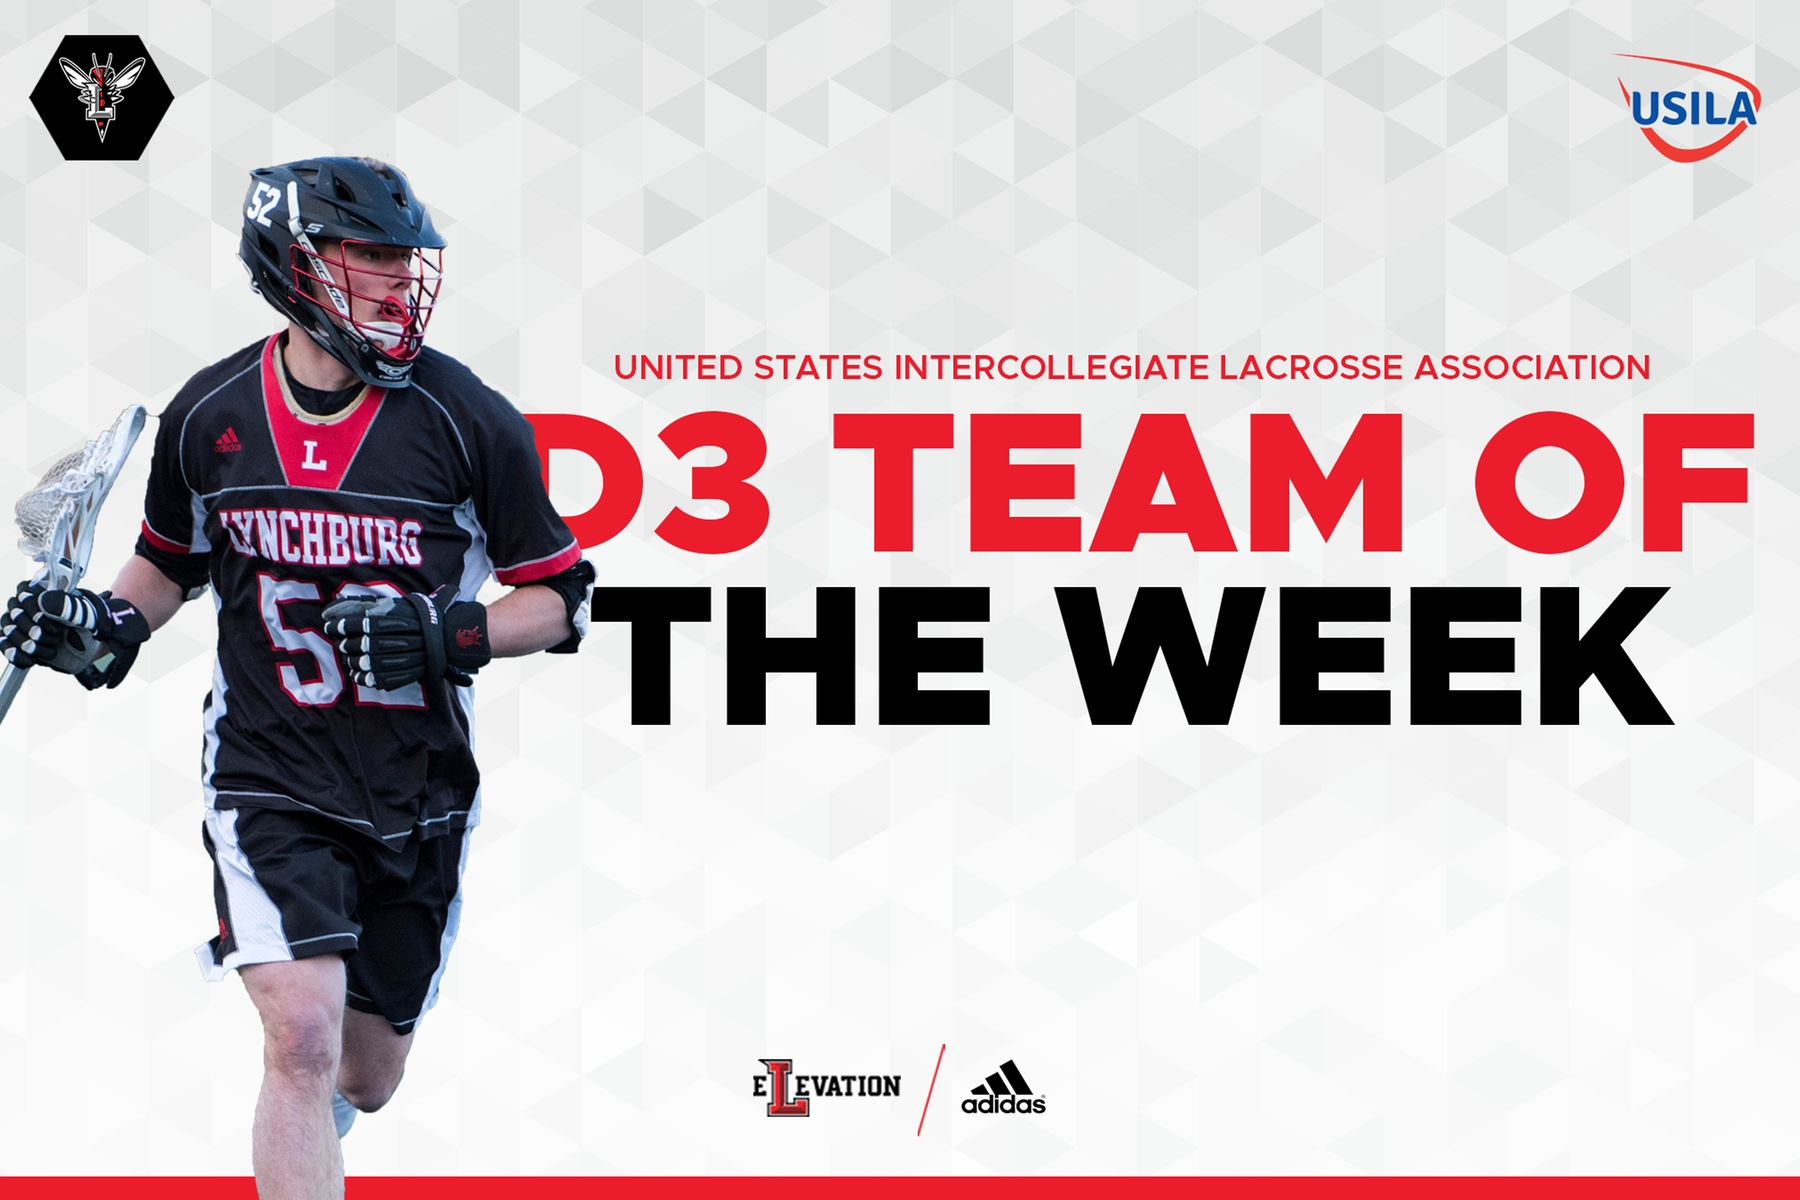 IMage of Josiah Martin playing lacrosse on white background with red and black letters; D3 team of the week